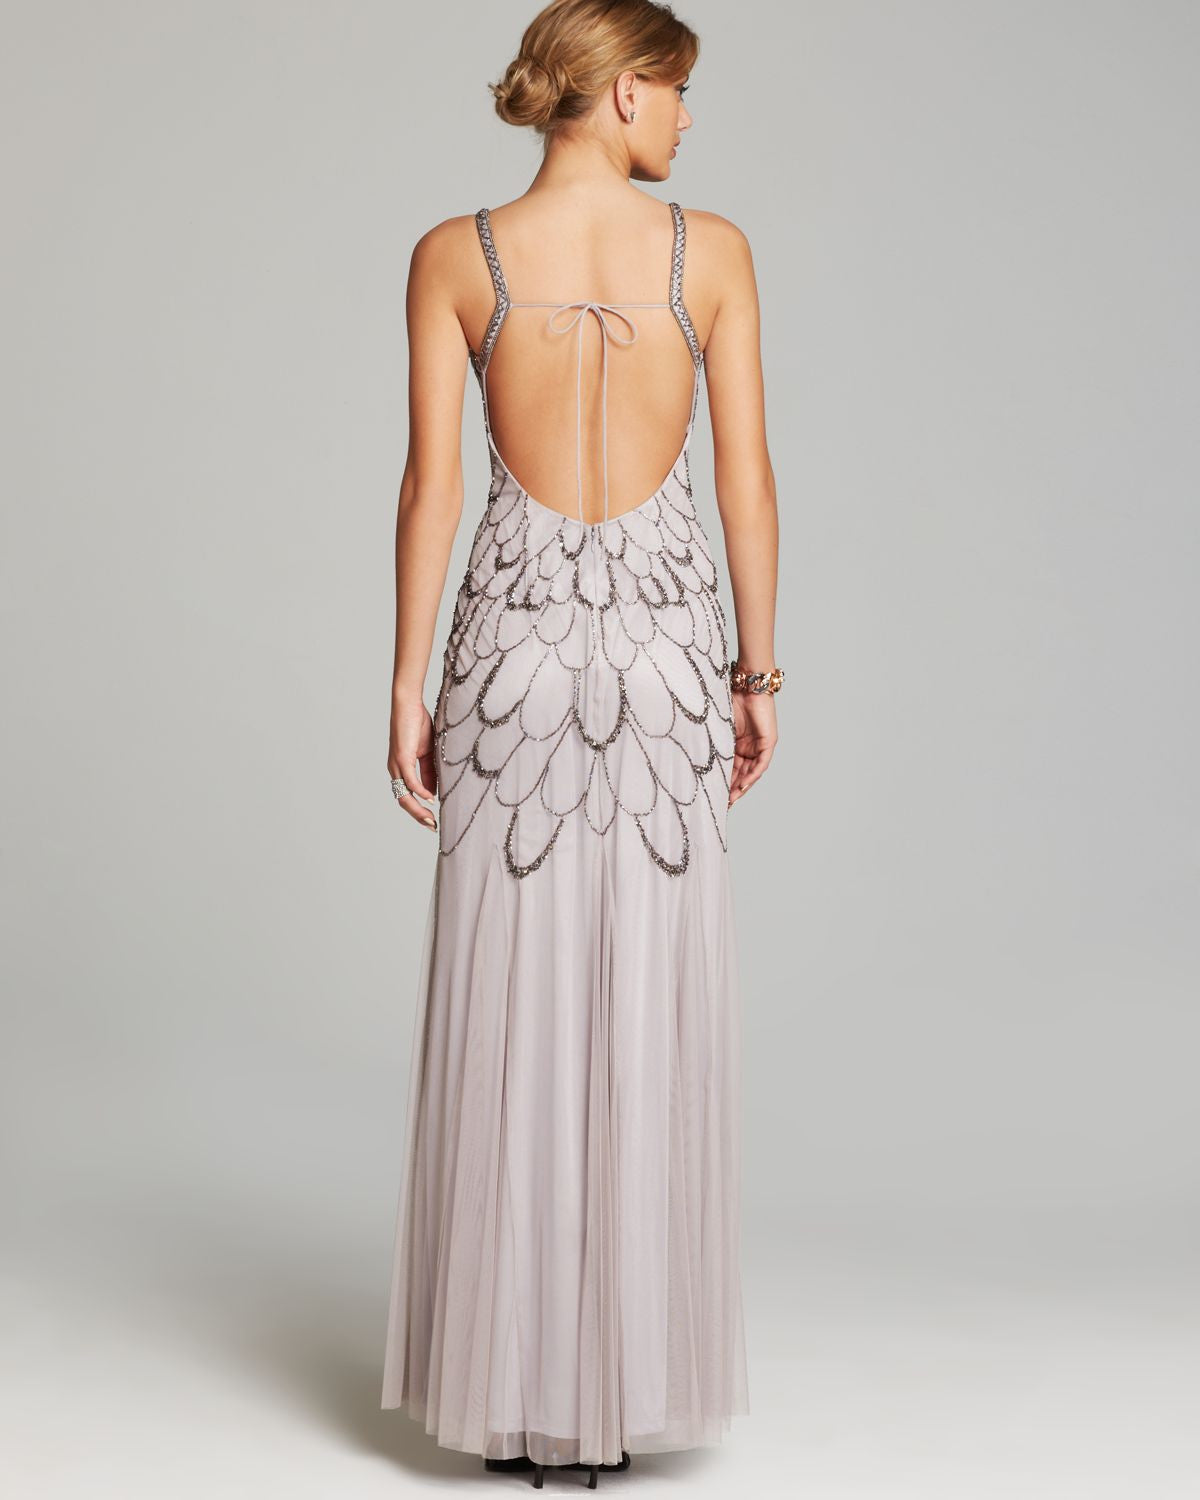 Adrianna Papell Beaded Backless Mesh Art Deco Gown Heather Grey